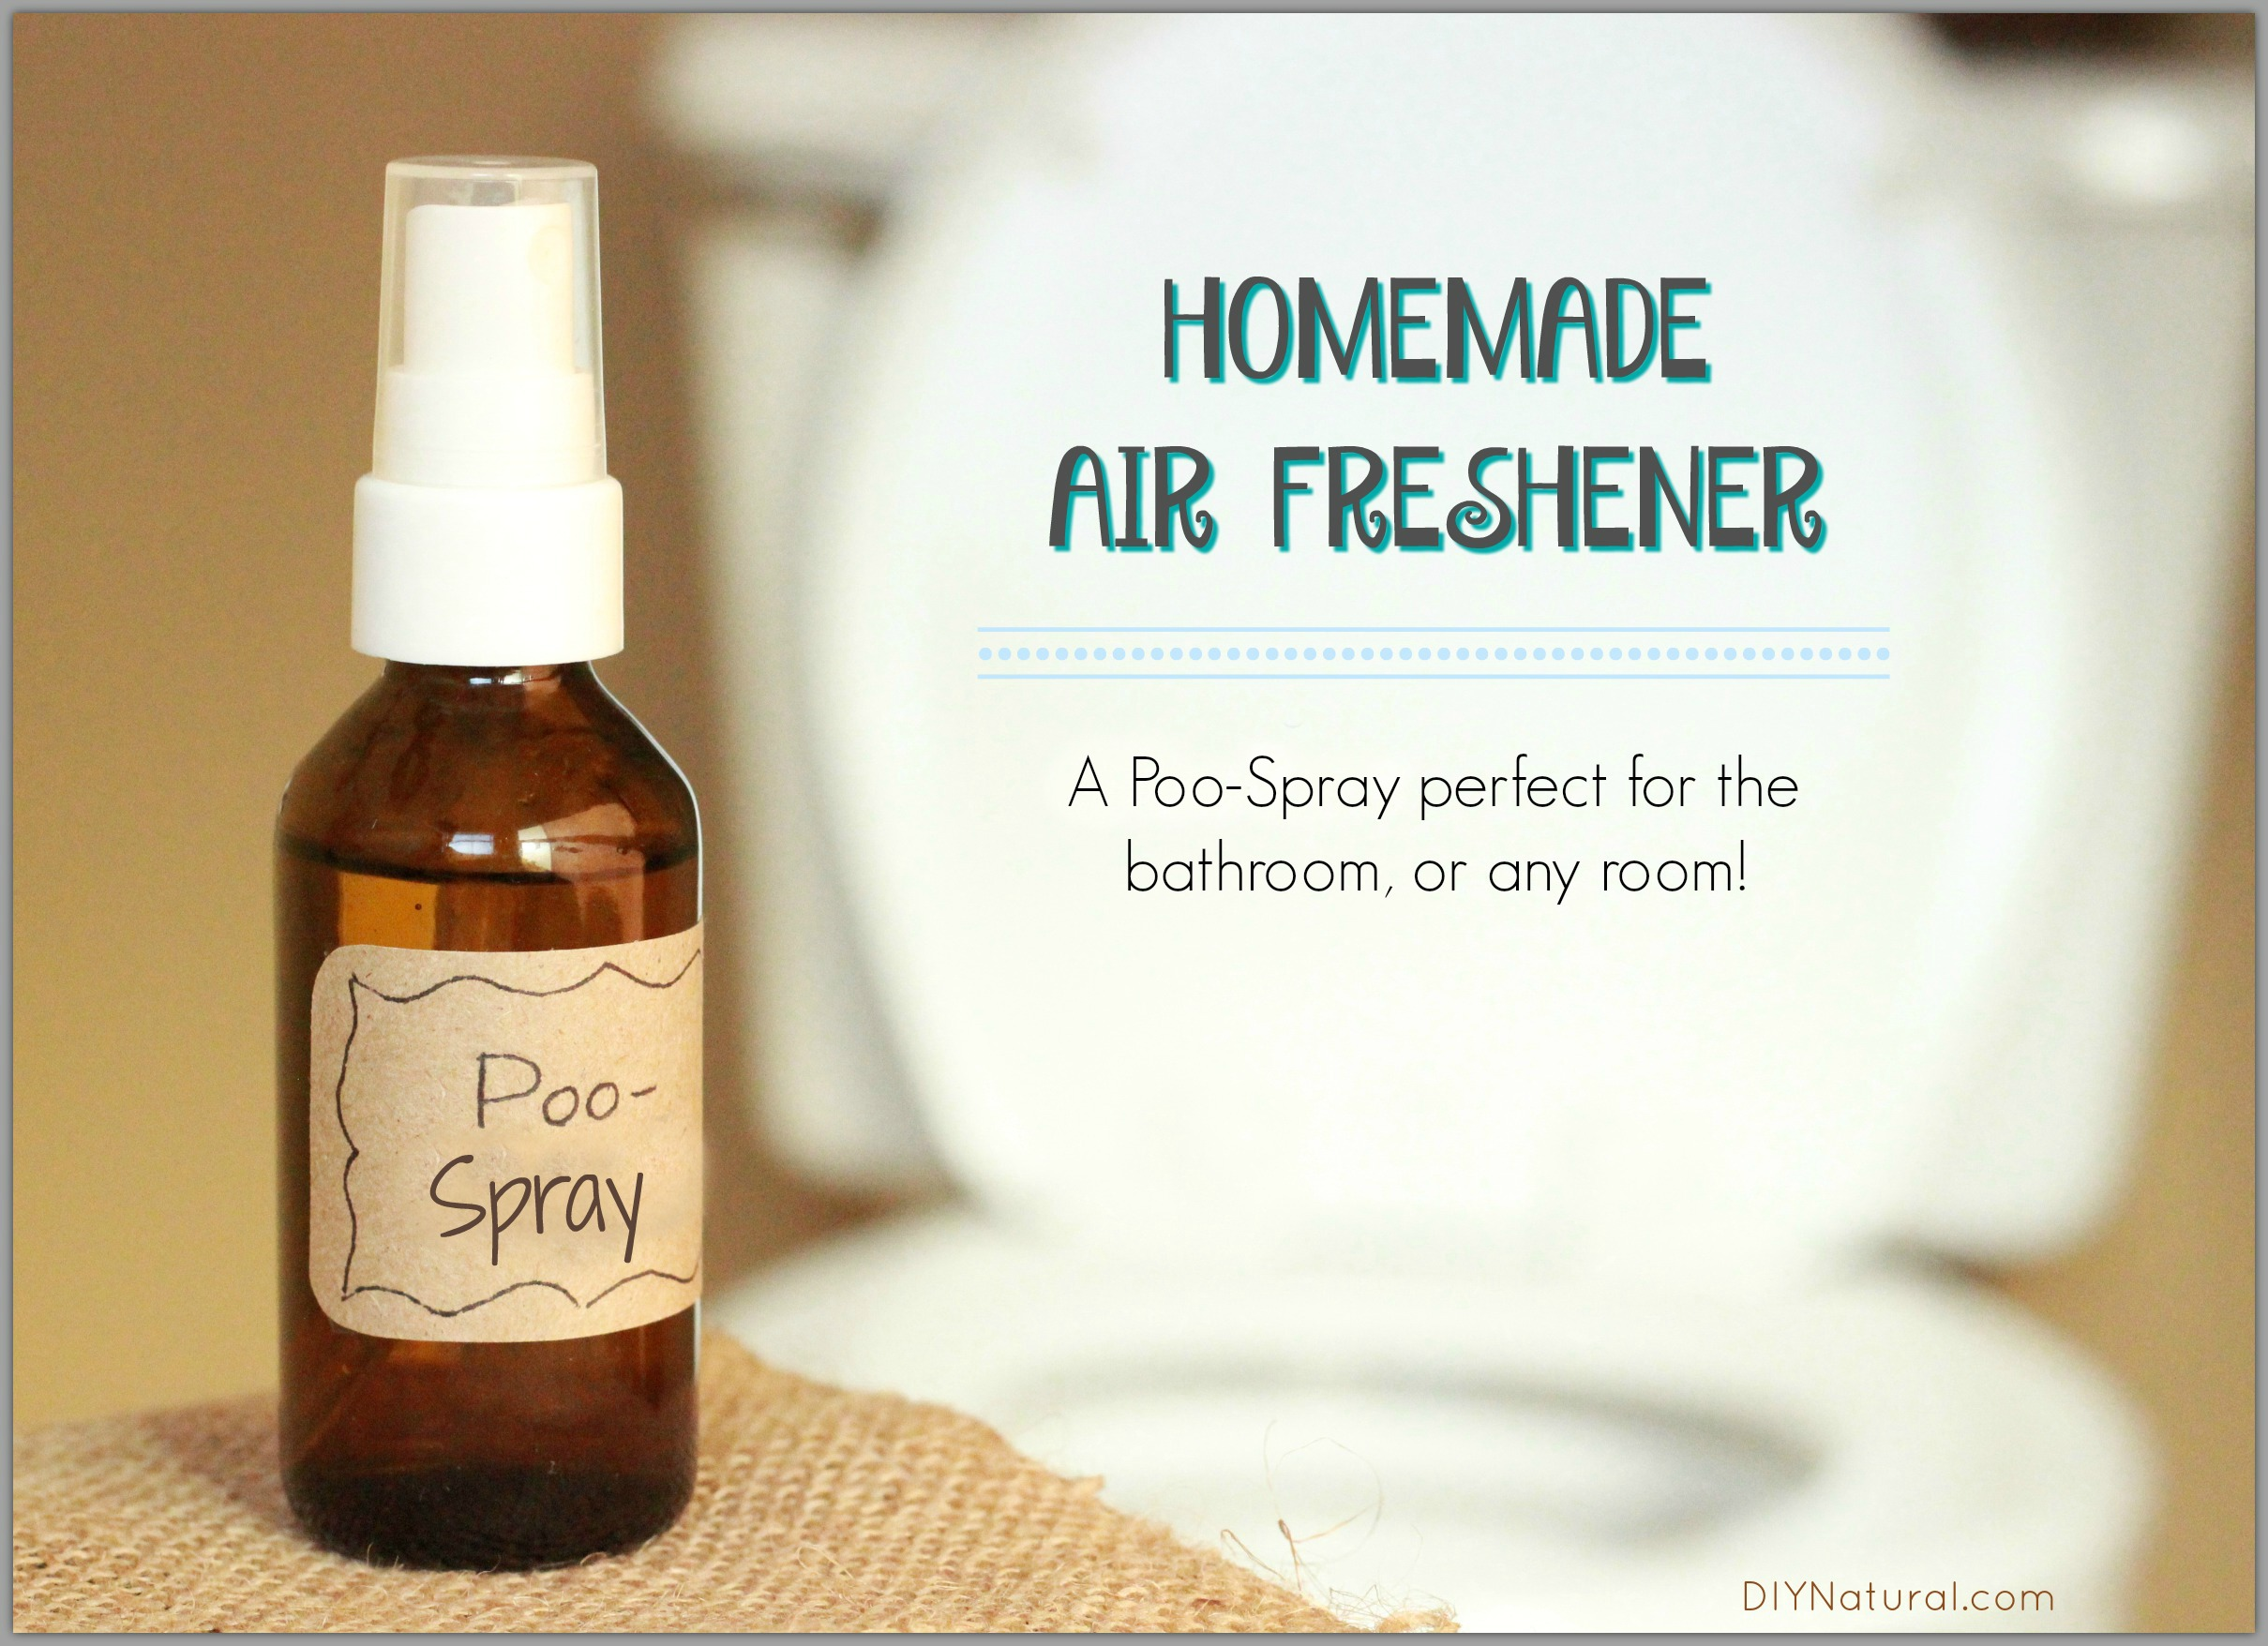 homemade air freshener: a natural diy poo-spray